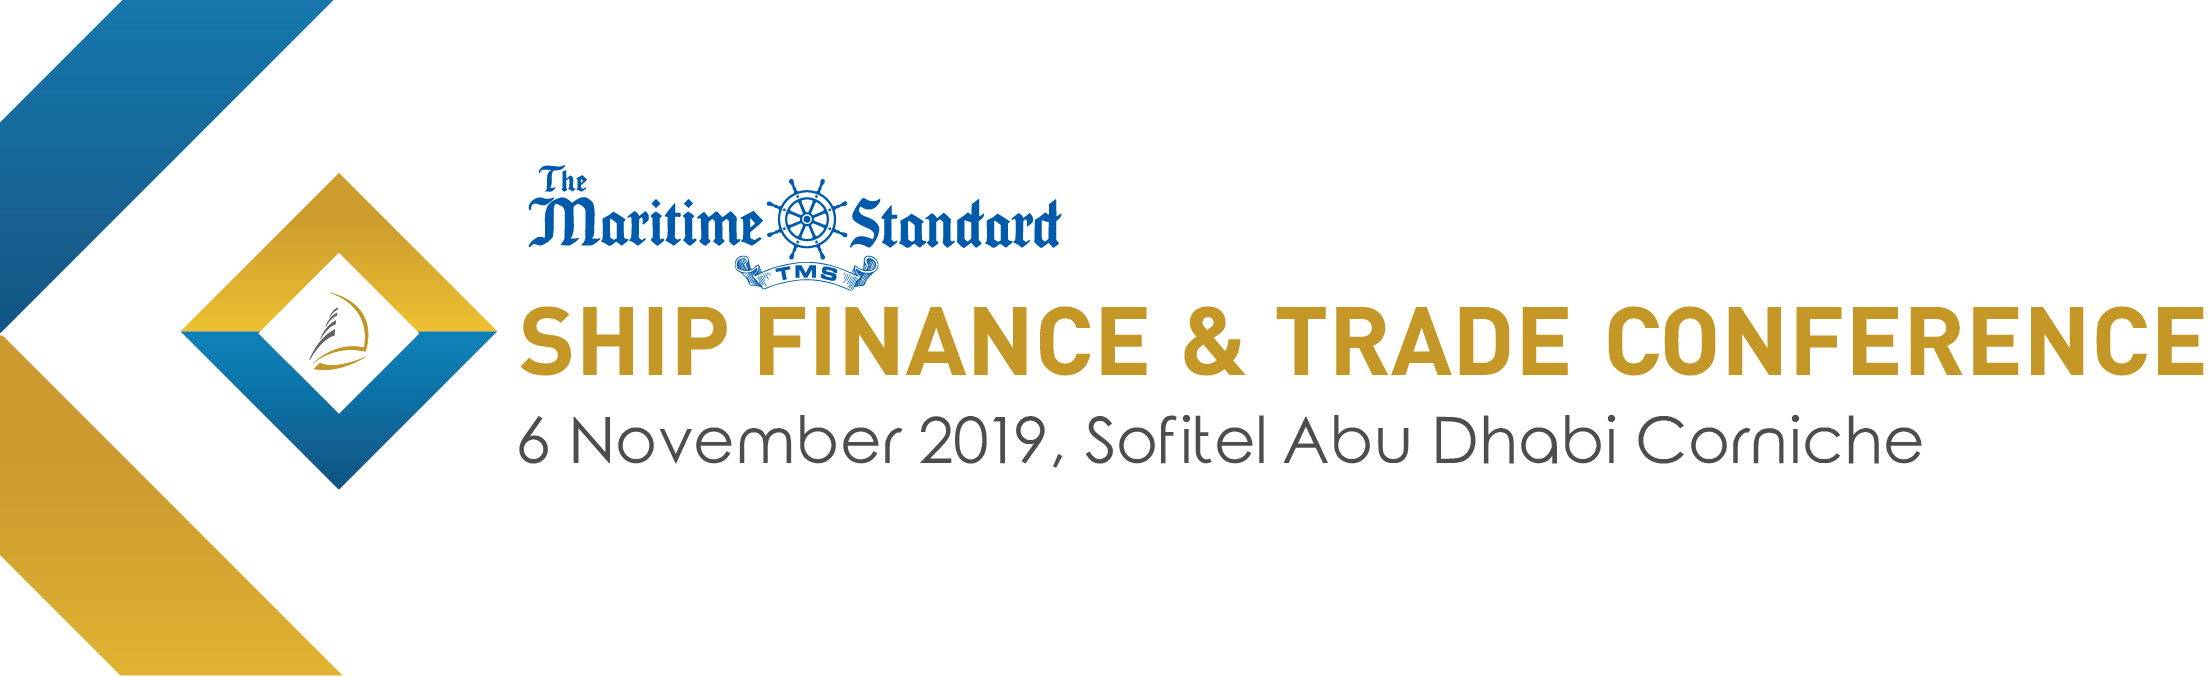 Conference Speakers 2018 - TMS Ship Finance & Trade Conference